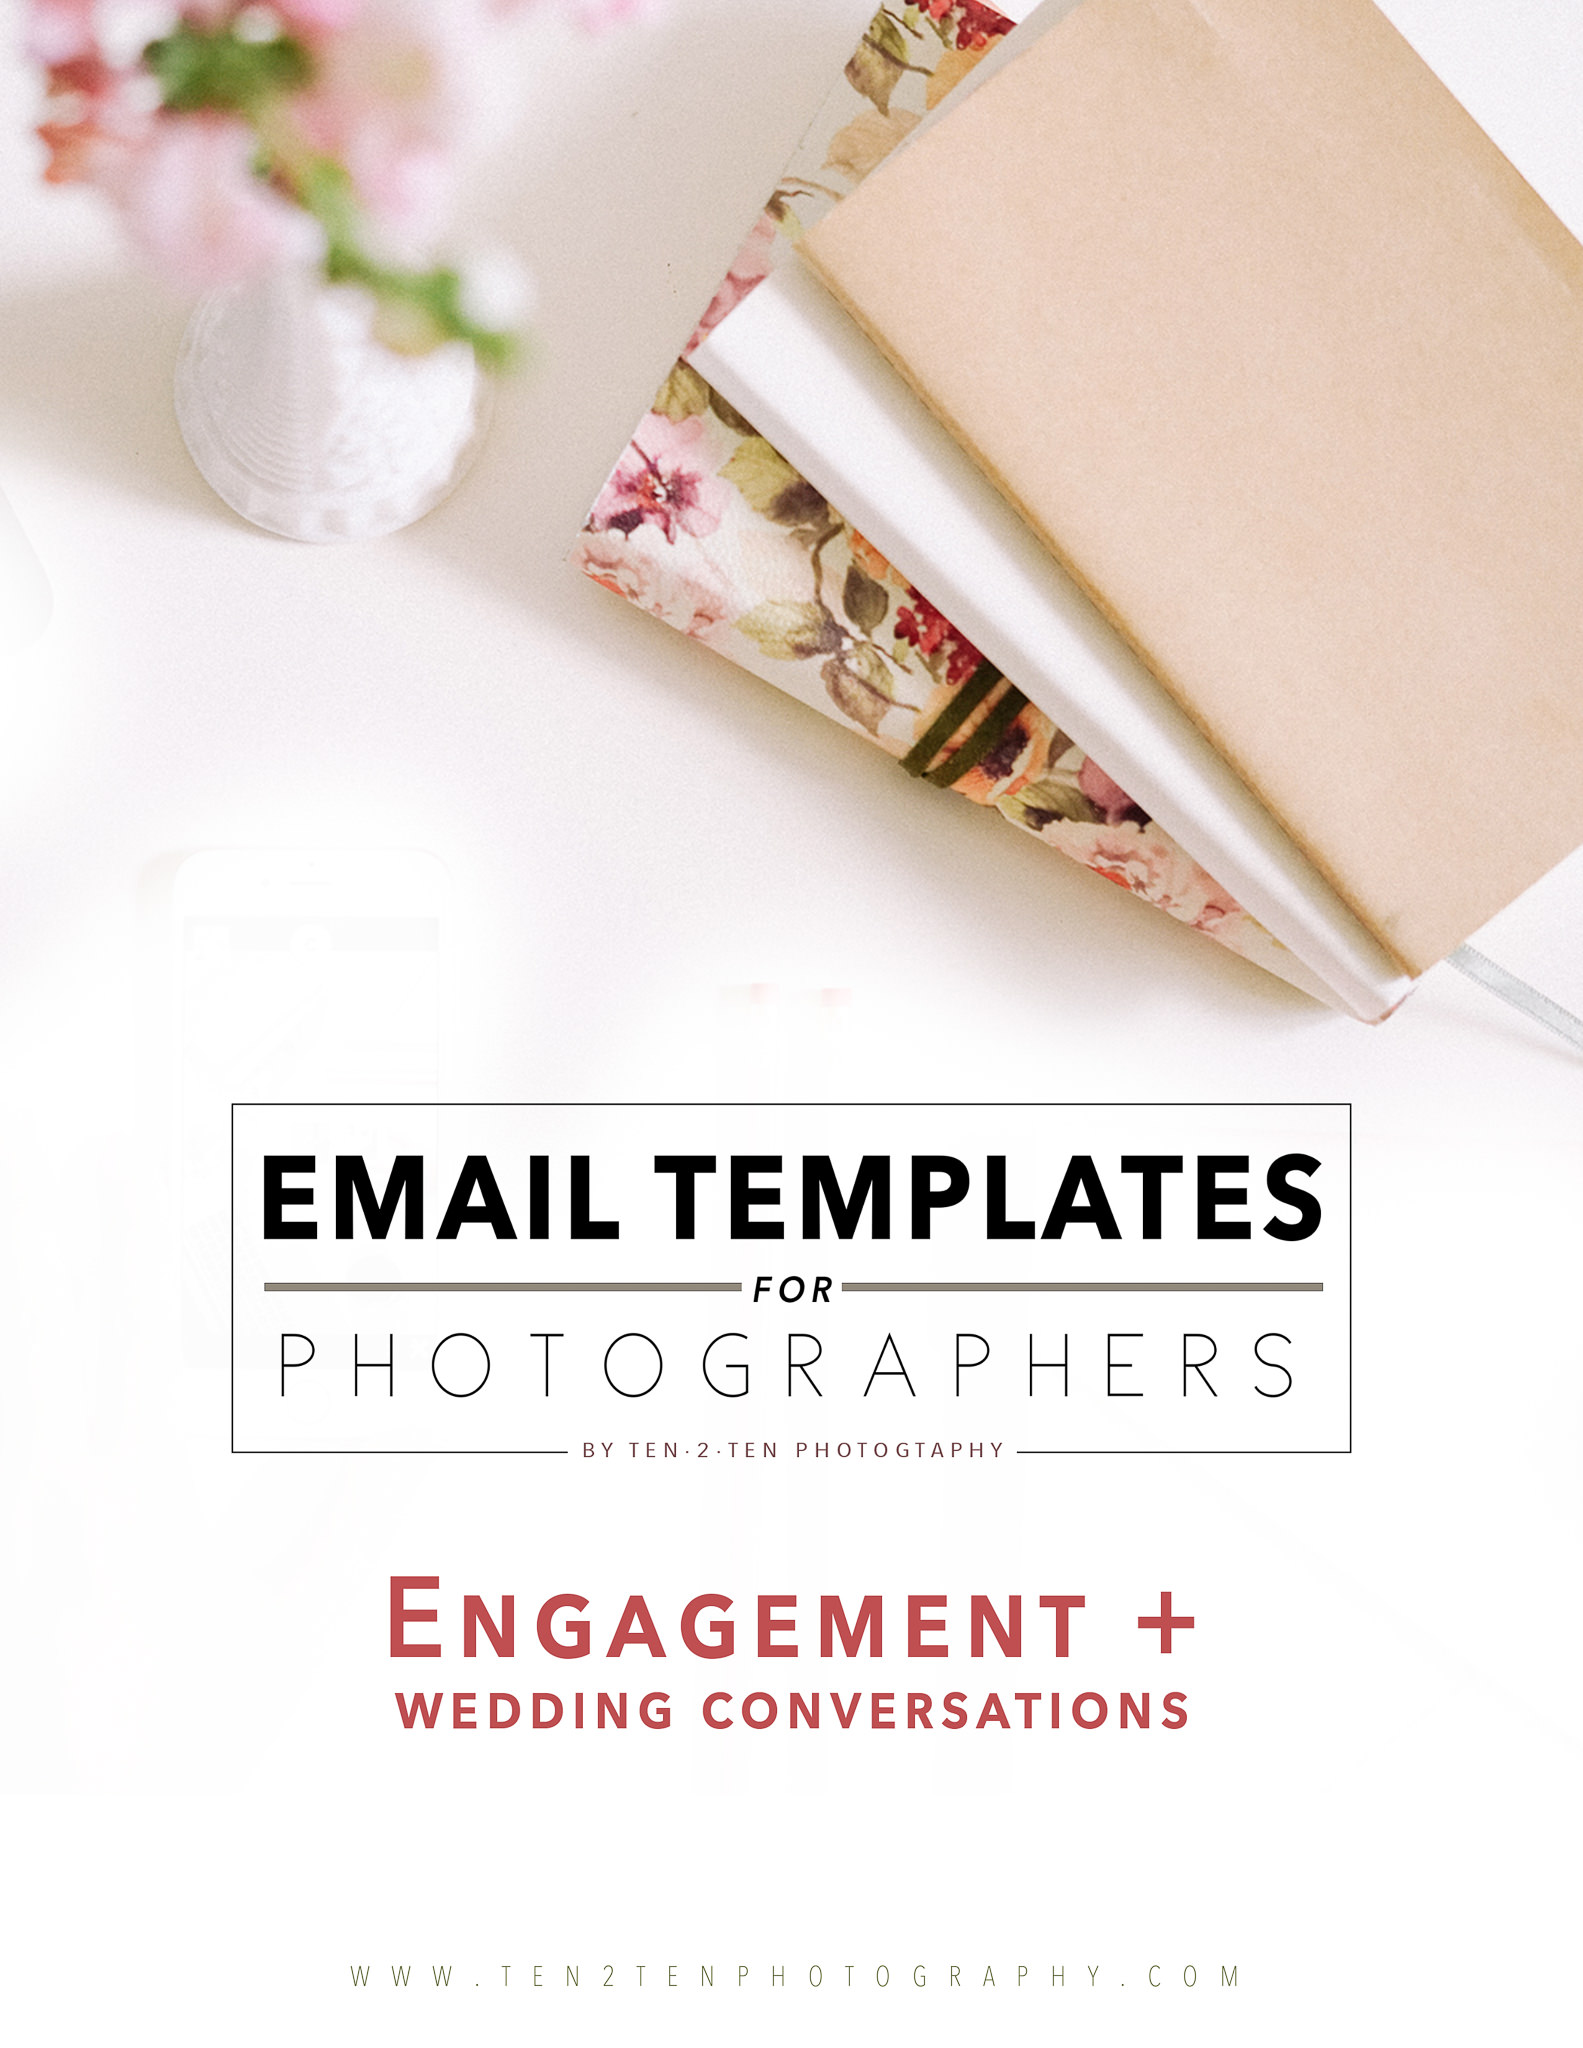 email templates for photographers 6 - Ideal Client Workbook